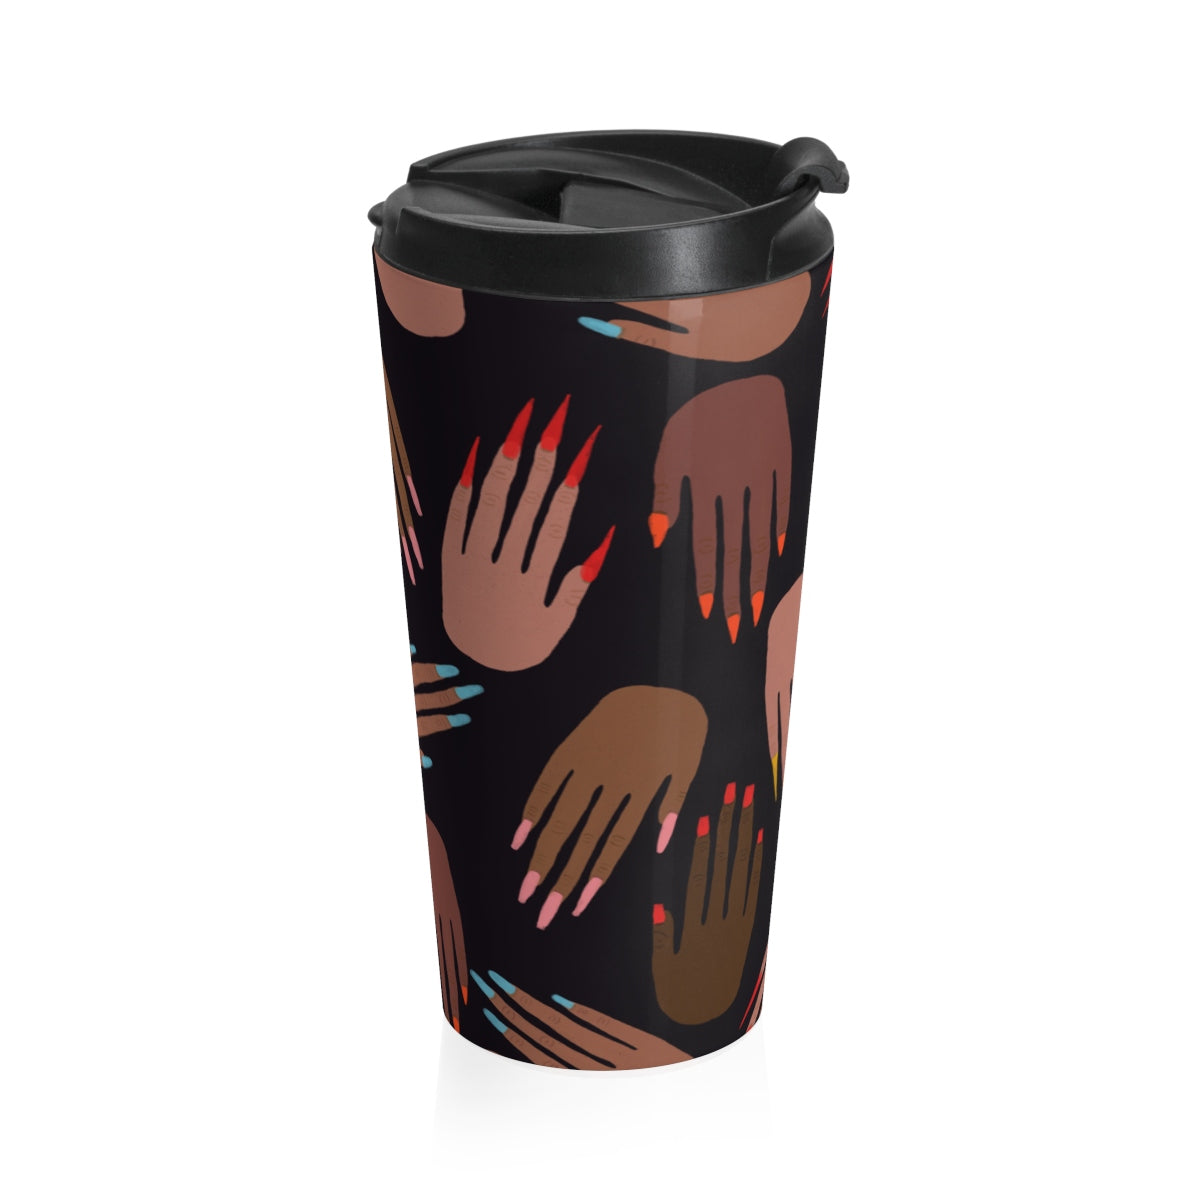 Pro Nails Stainless Steel Travel Mug